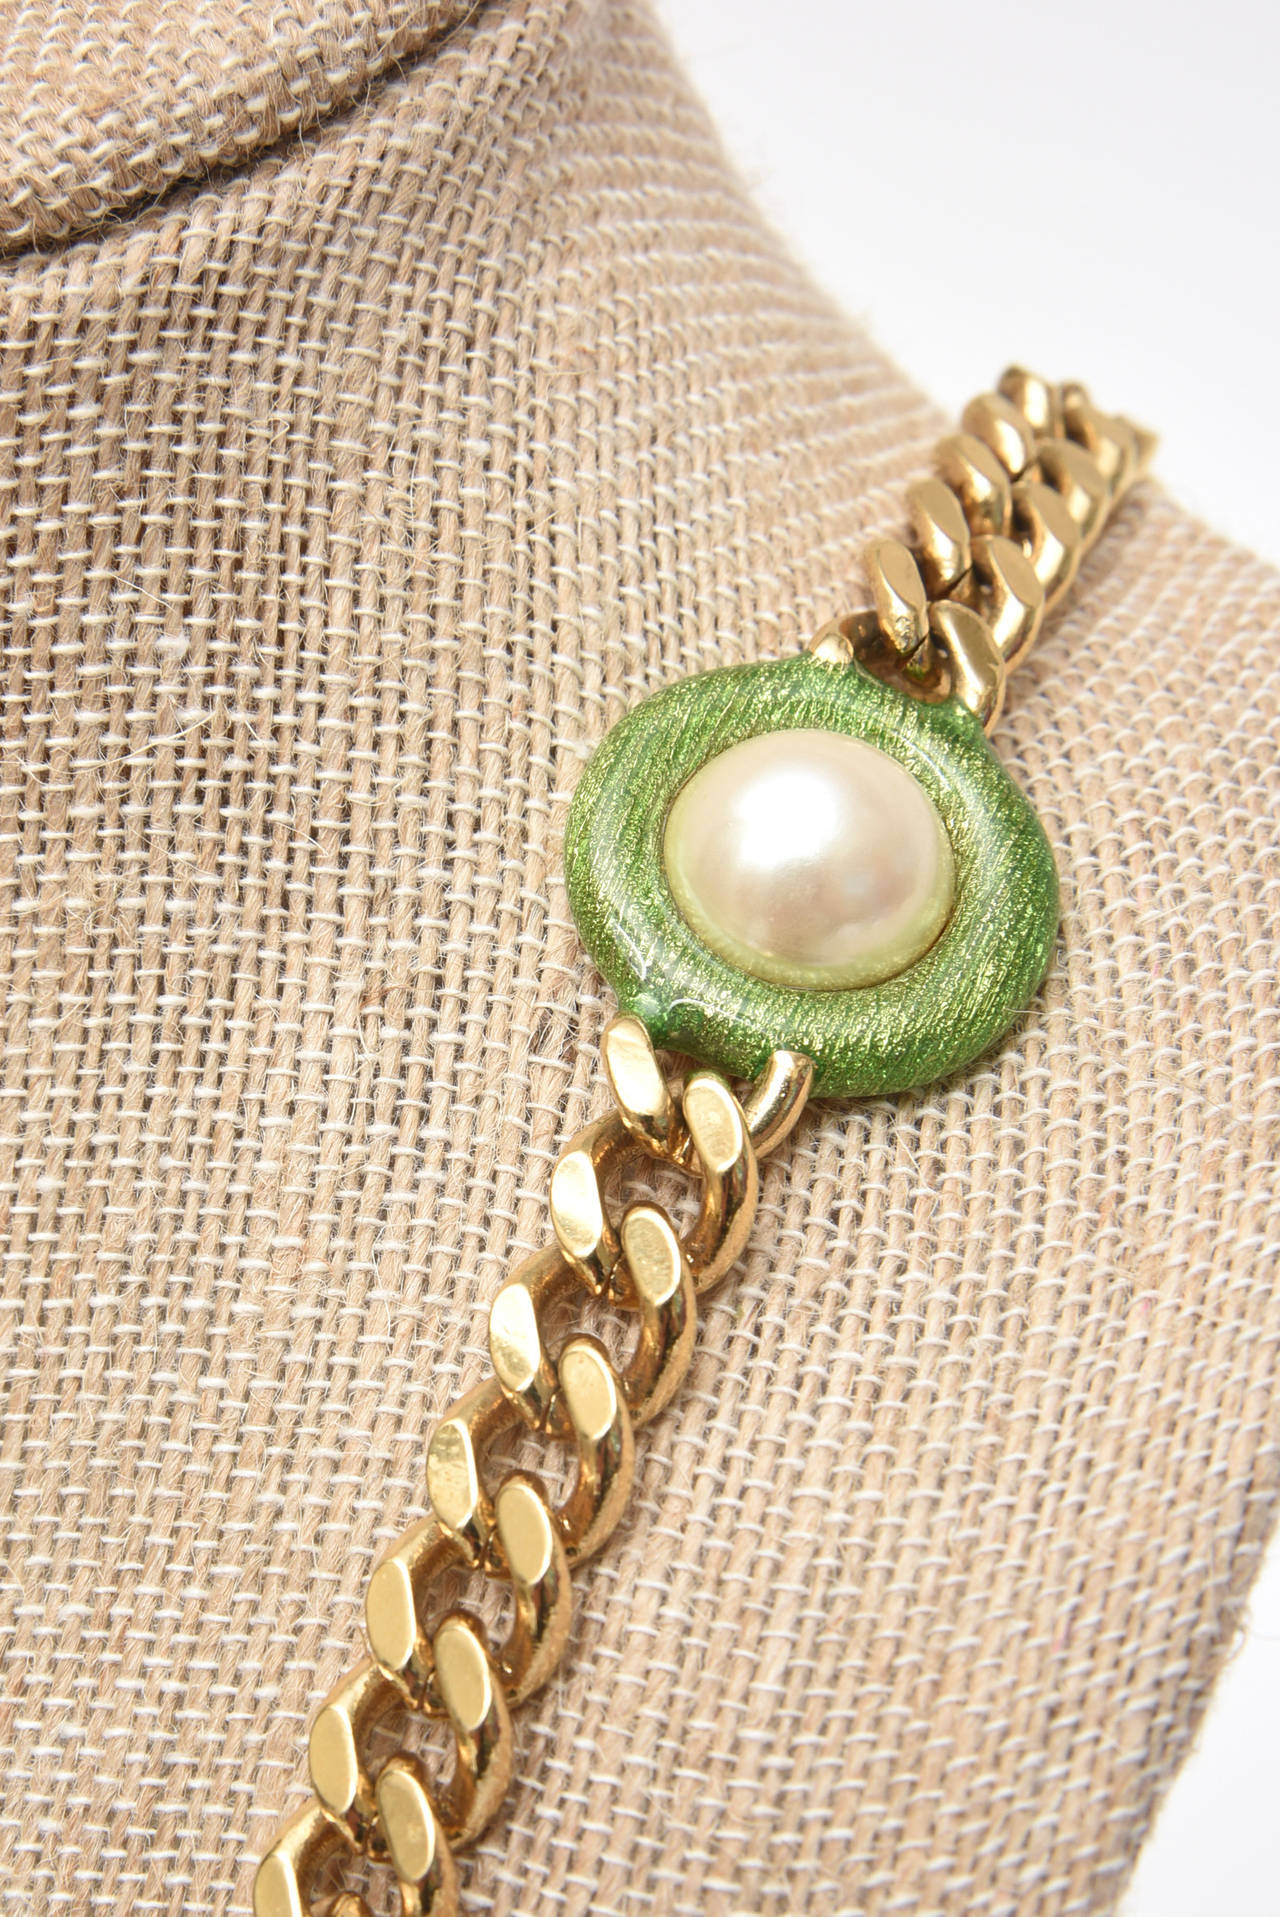 Guy Laroche Gold Tone Chain Link Strand Necklace with Enamel and Faux Pearl 10